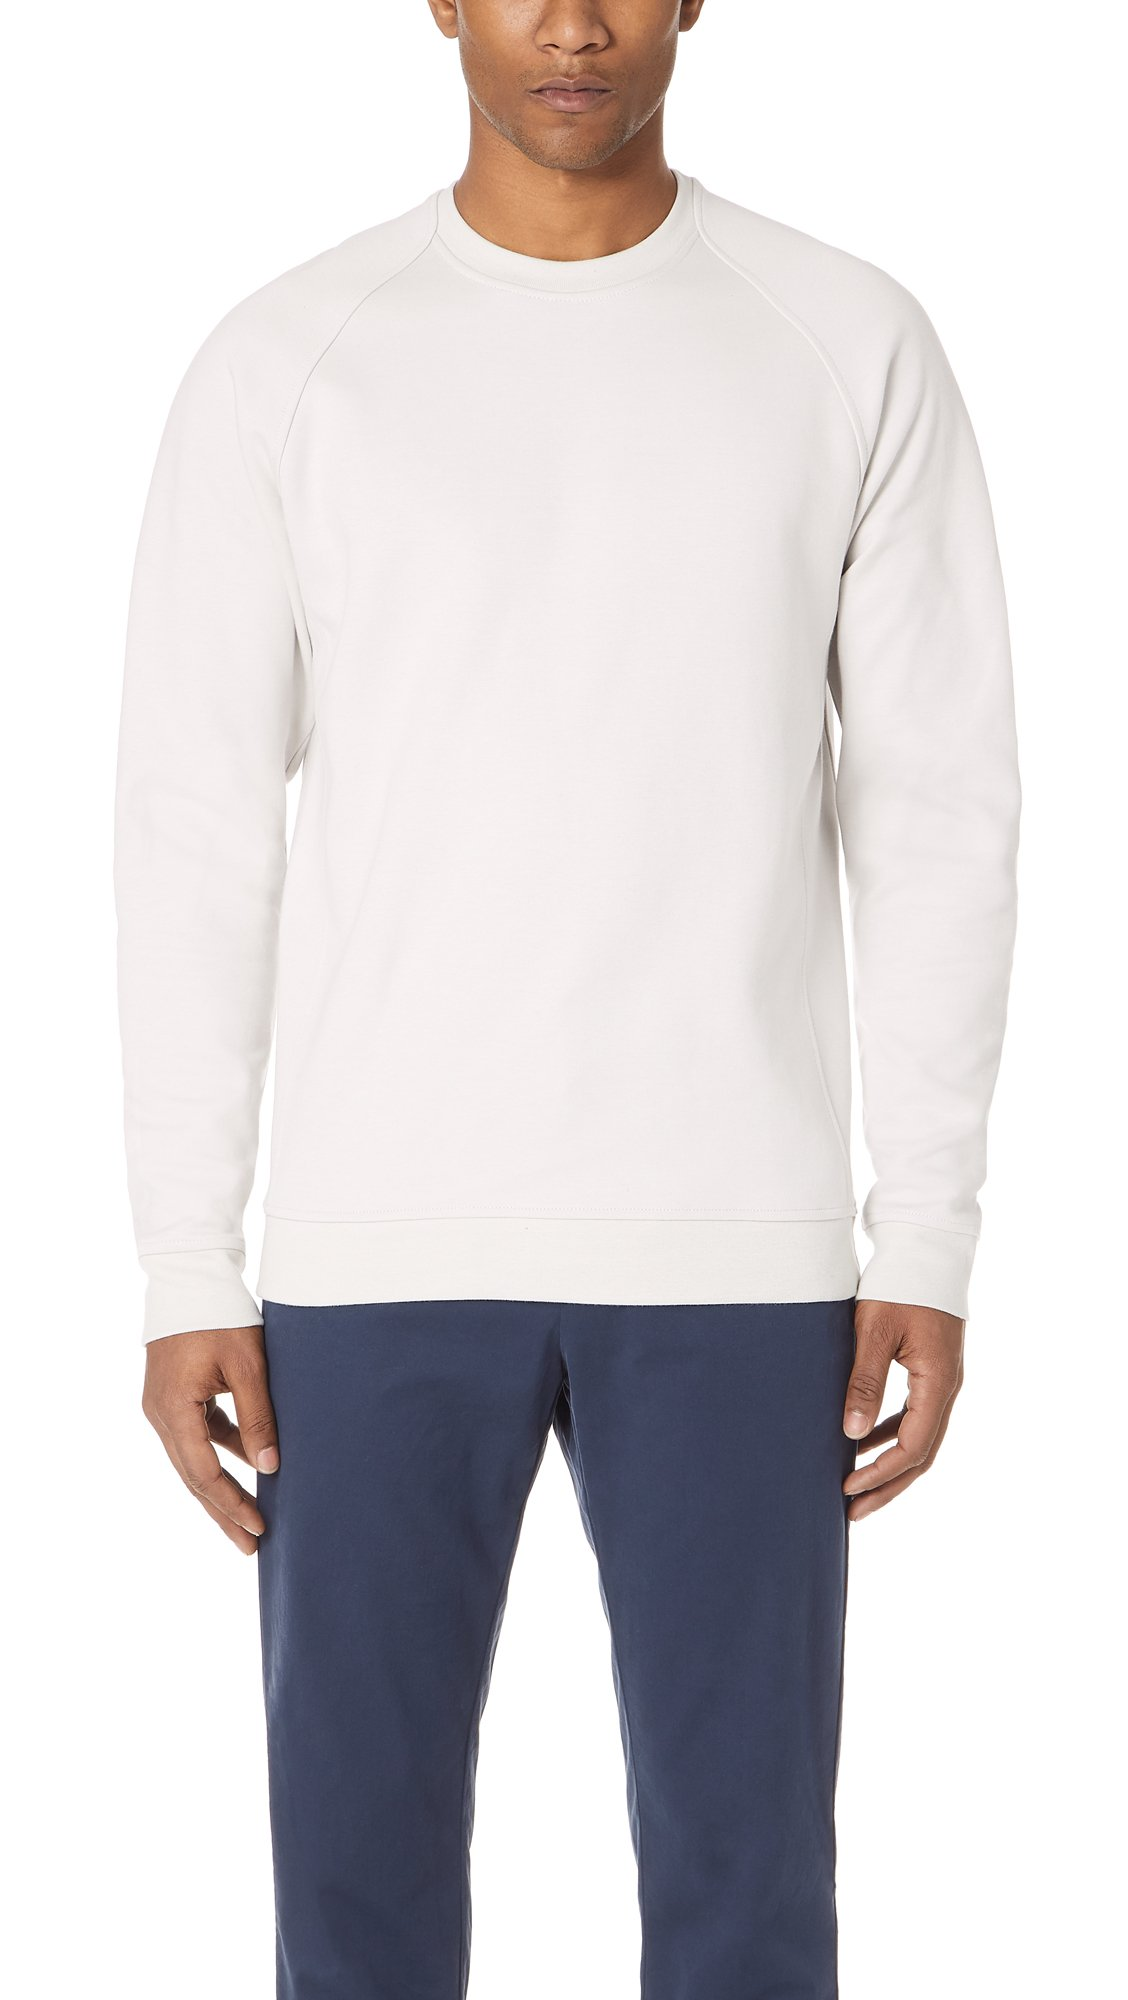 Norse Projects Men's Ketel Dry Mercerized Top, Kit White, Small